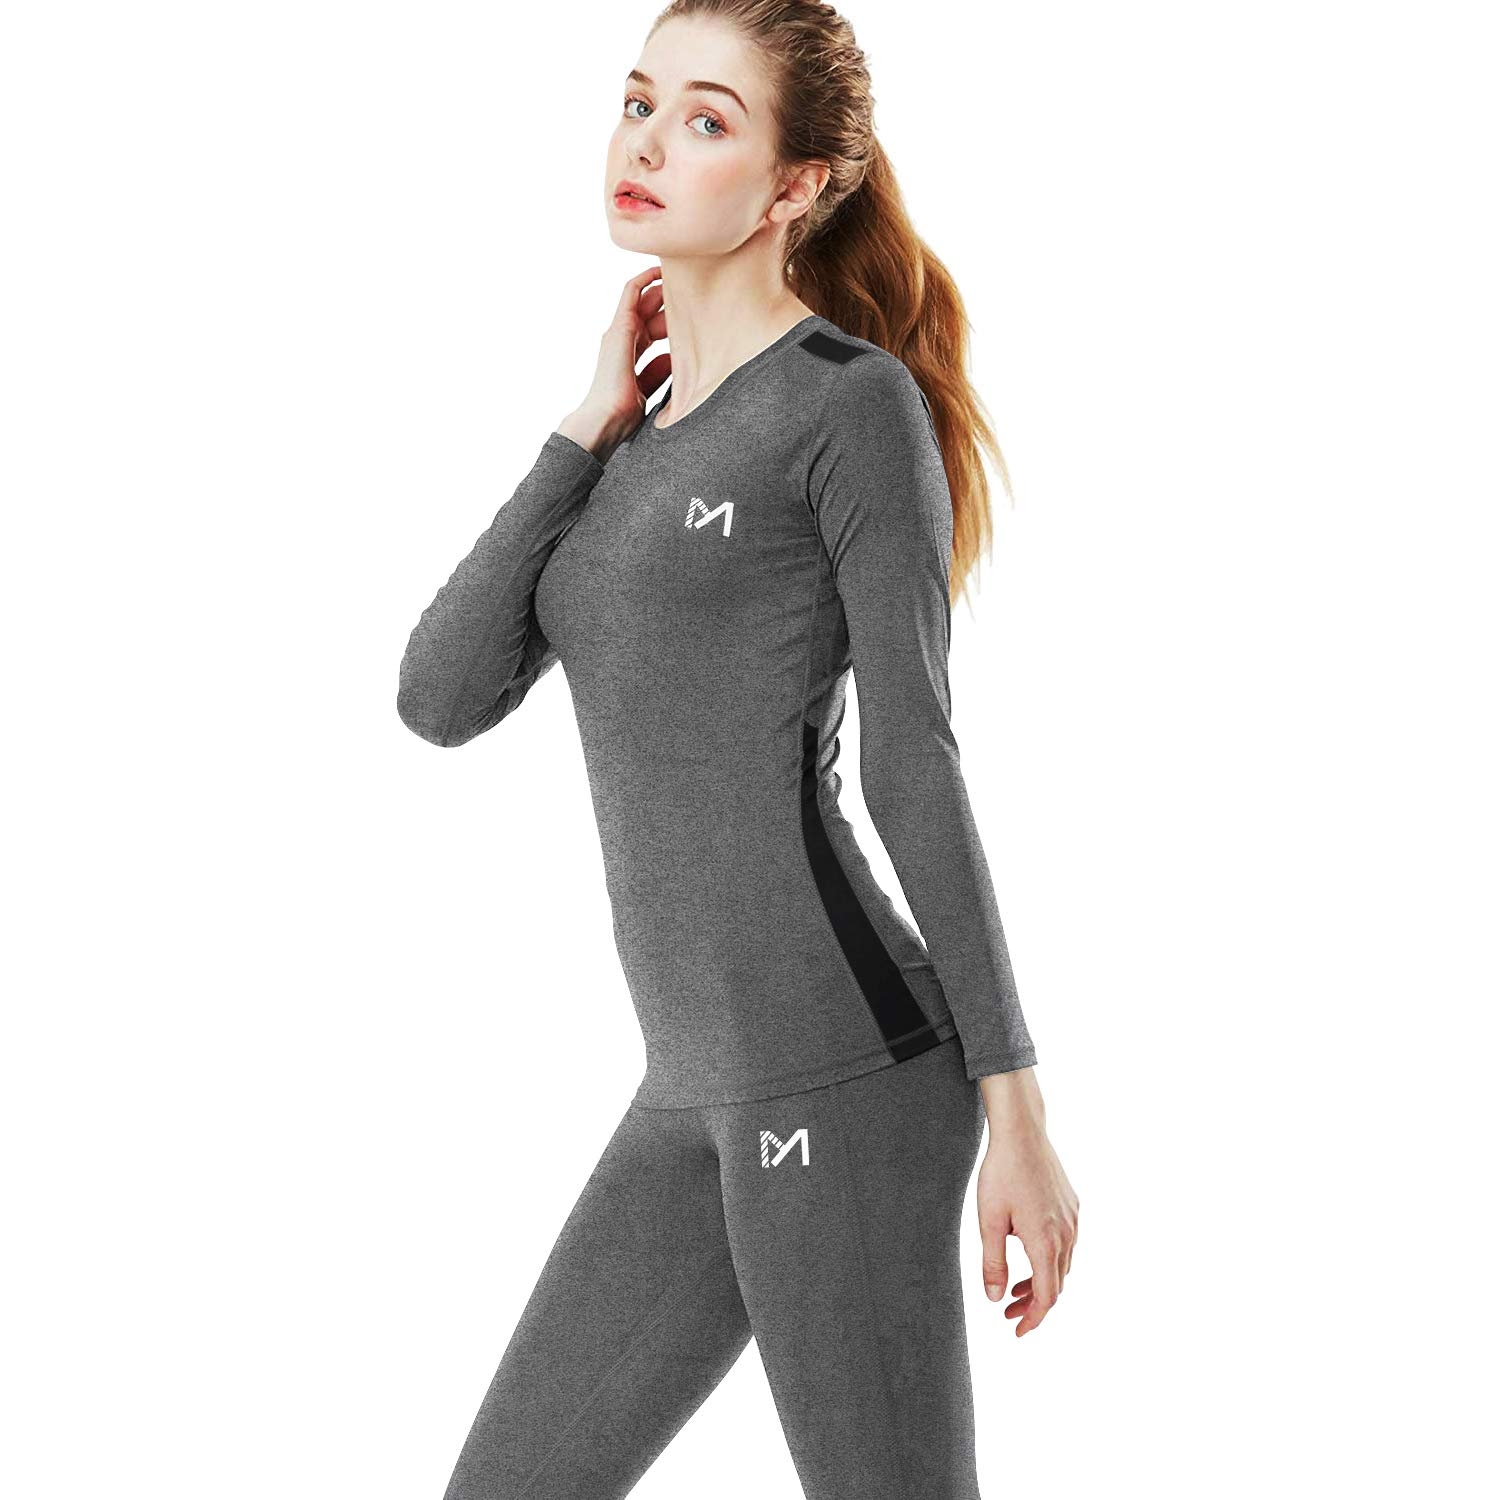 Women's Winter Underwear Set, Sport Thermal Long Johns Base Layer, Outdoor Compression Gear Top & Bottom for Skiing Running (Hgrey, X-Large) by MEETYOO